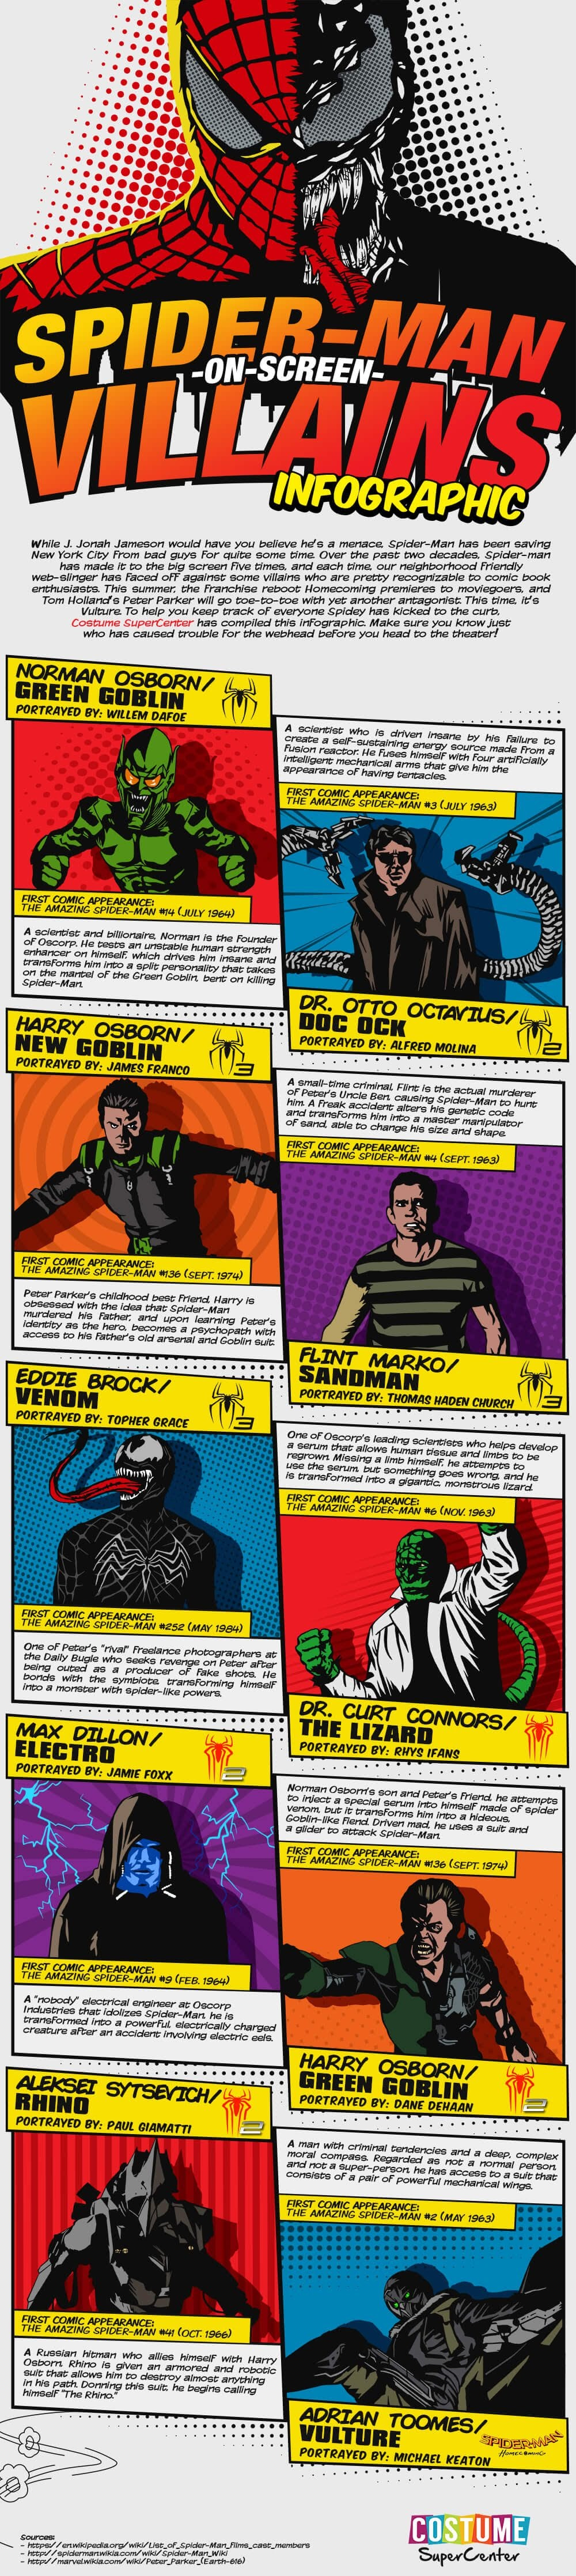 Spider-Man On Screen Villains #infographic